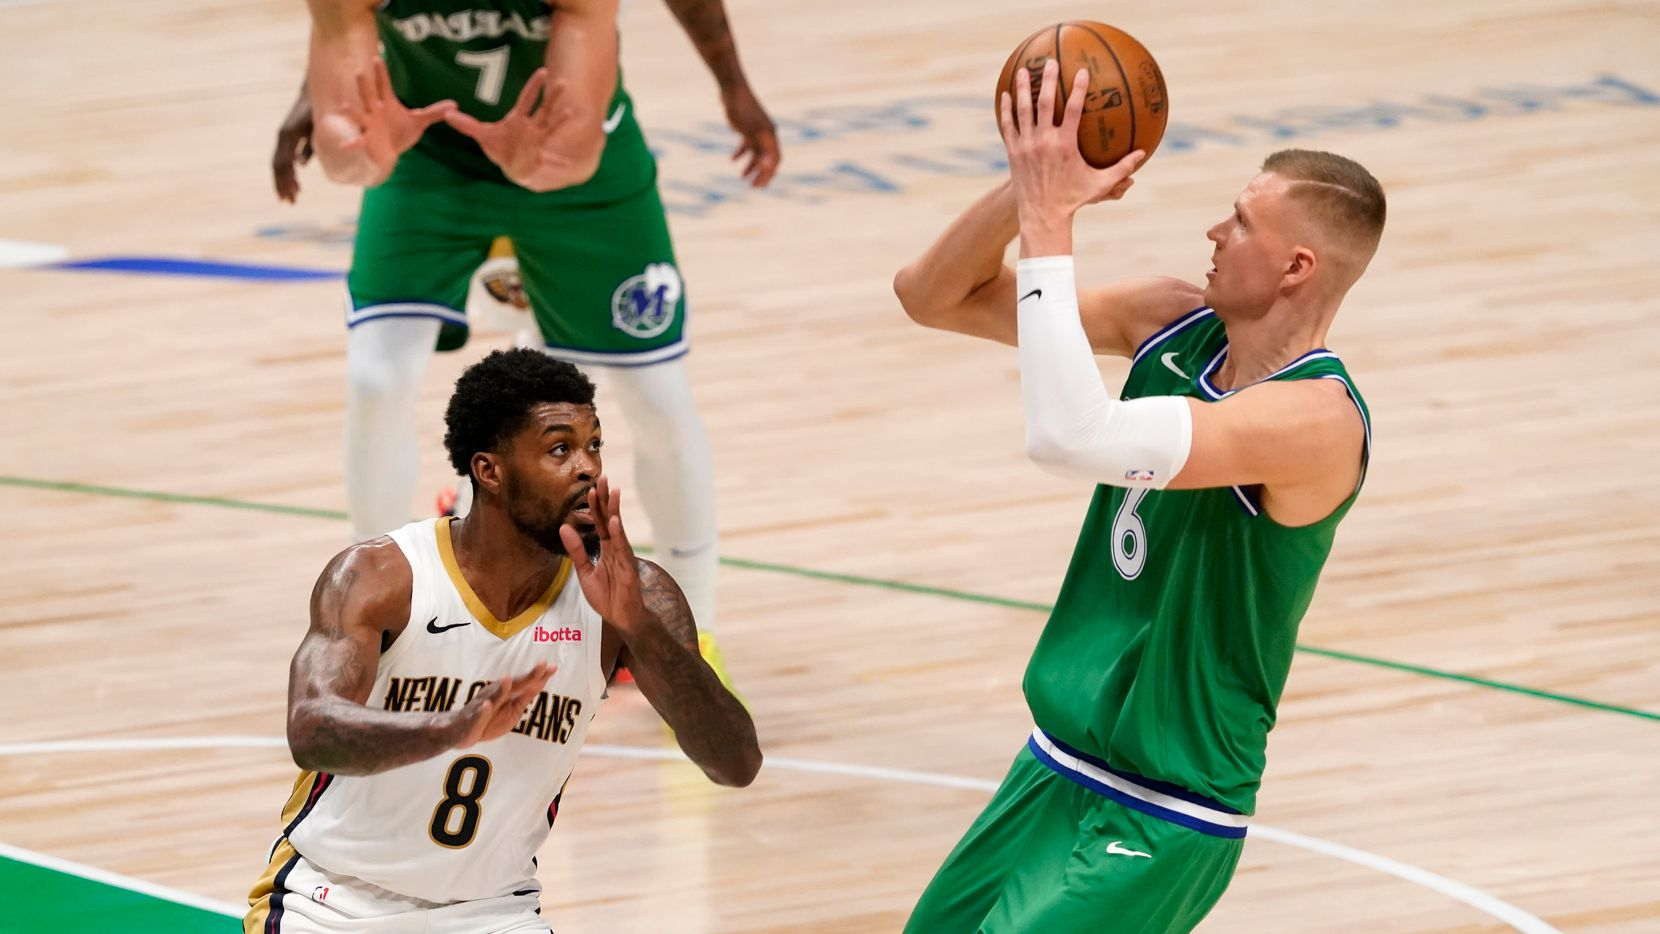 New Orleans Pelicans' Naji Marshall (8) defends as Dallas Mavericks center Kristaps Porzingis (6) shoots during the first half of an NBA basketball game in Dallas, Wednesday, May 12, 2021. (AP Photo/Tony Gutierrez)